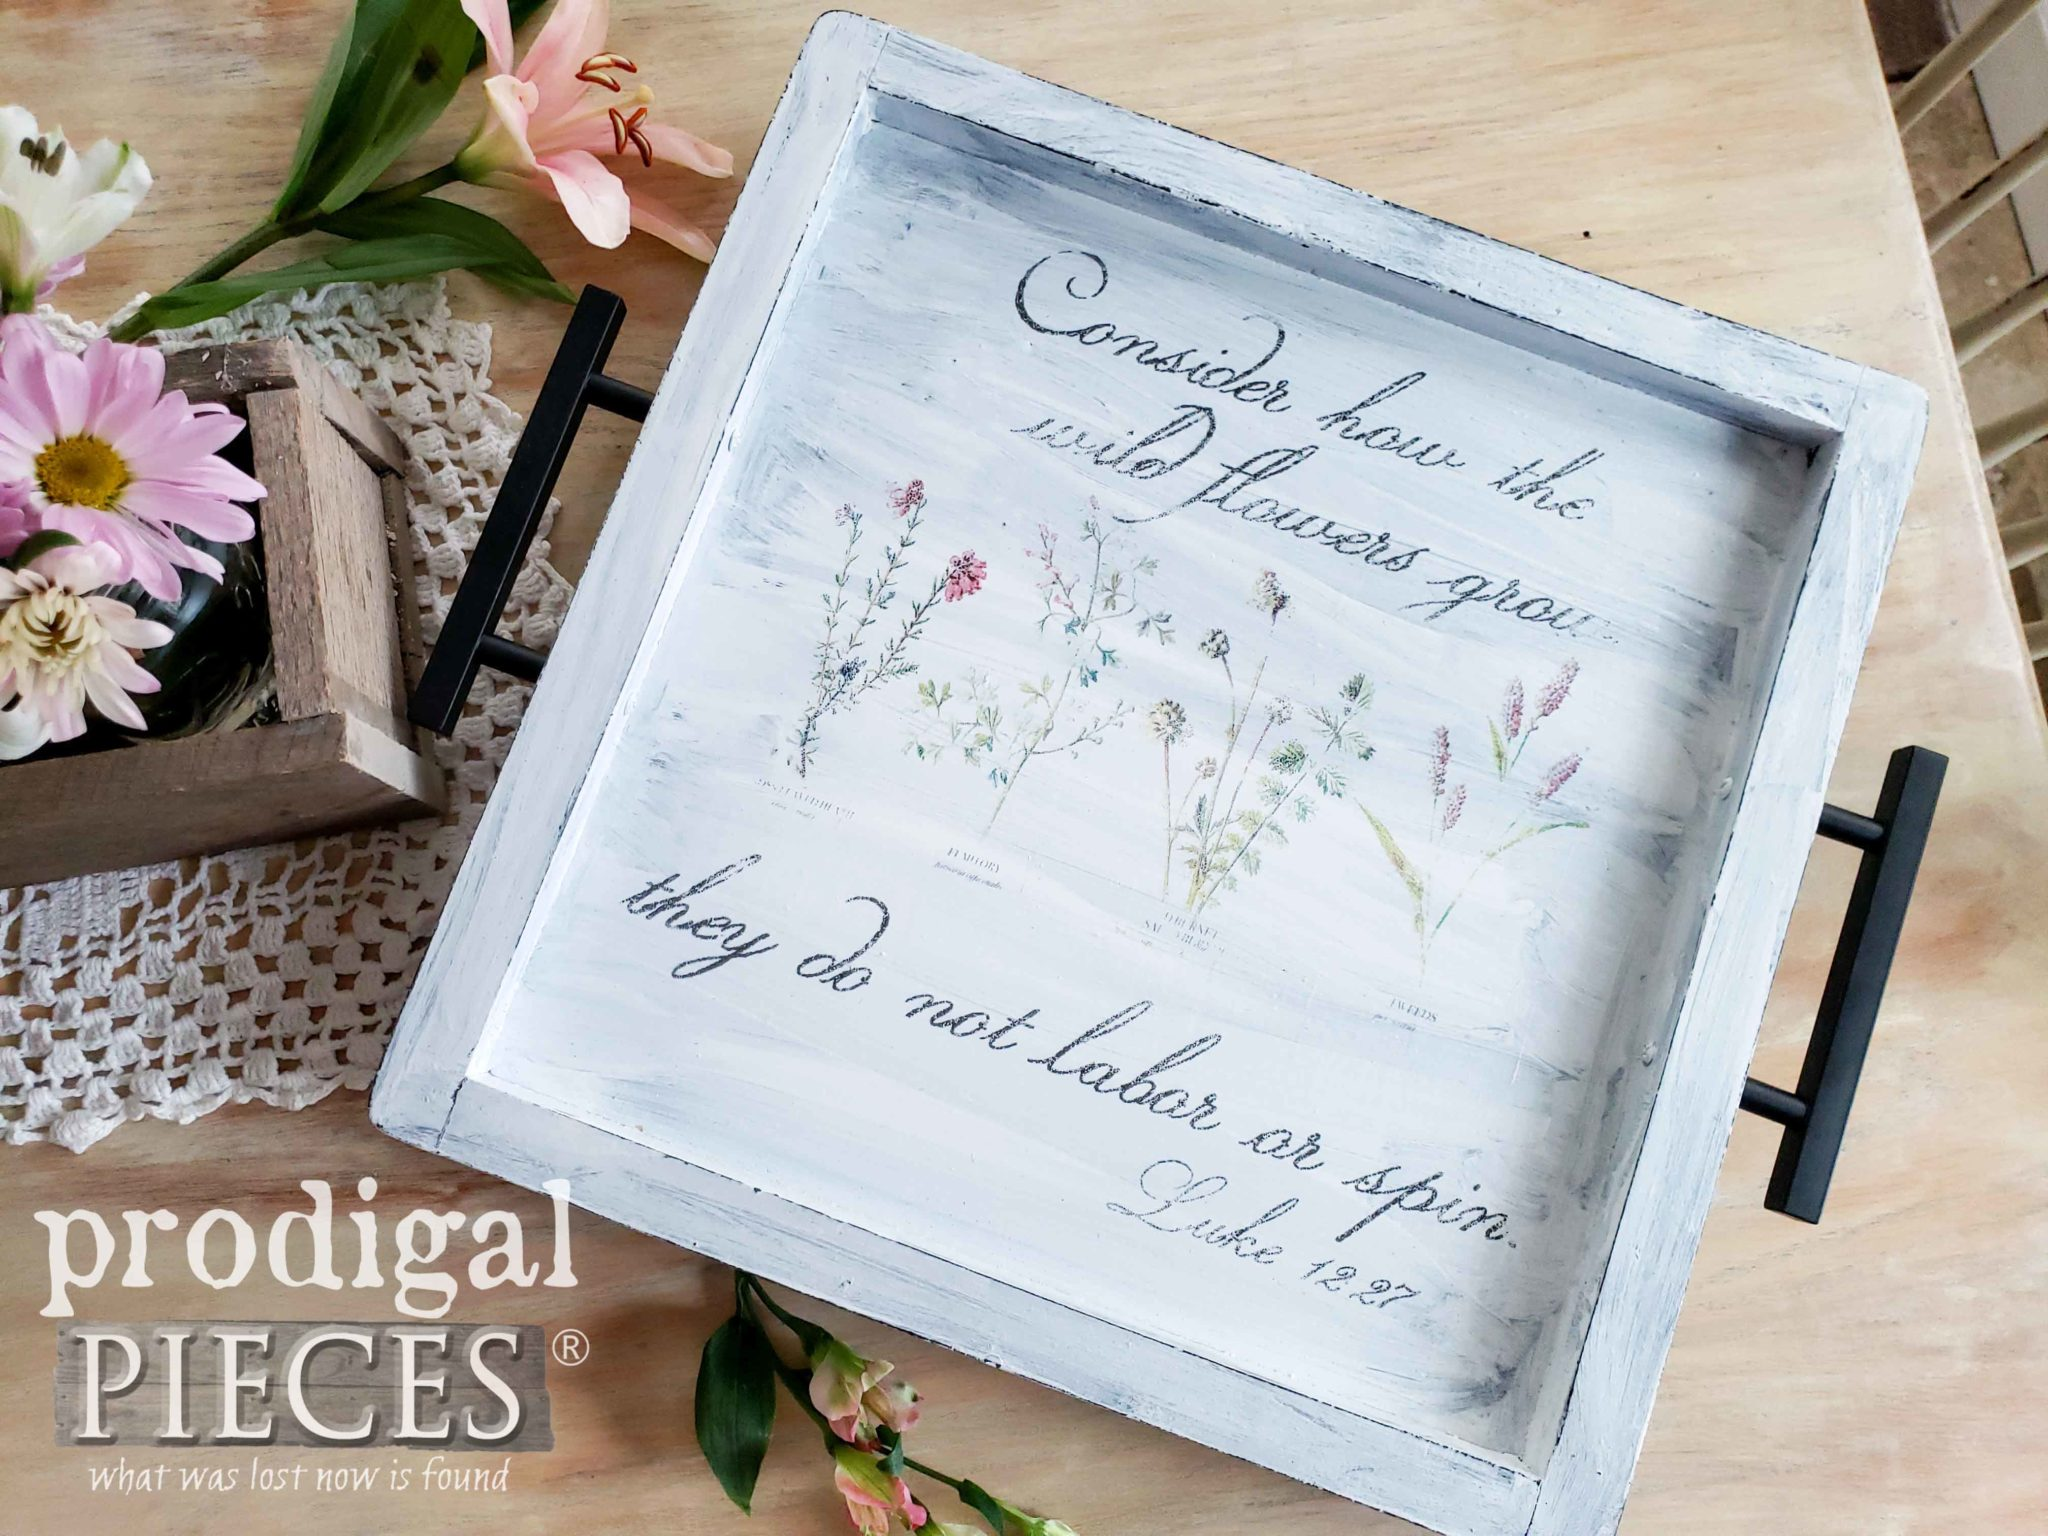 Handmade Botanical Print Serving Tray with Scripture by Larissa of Prodigal Pieces | prodigalpieces.com #prodigalpieces #diy #vintage #home #homedecor #shopping #homedecorideas